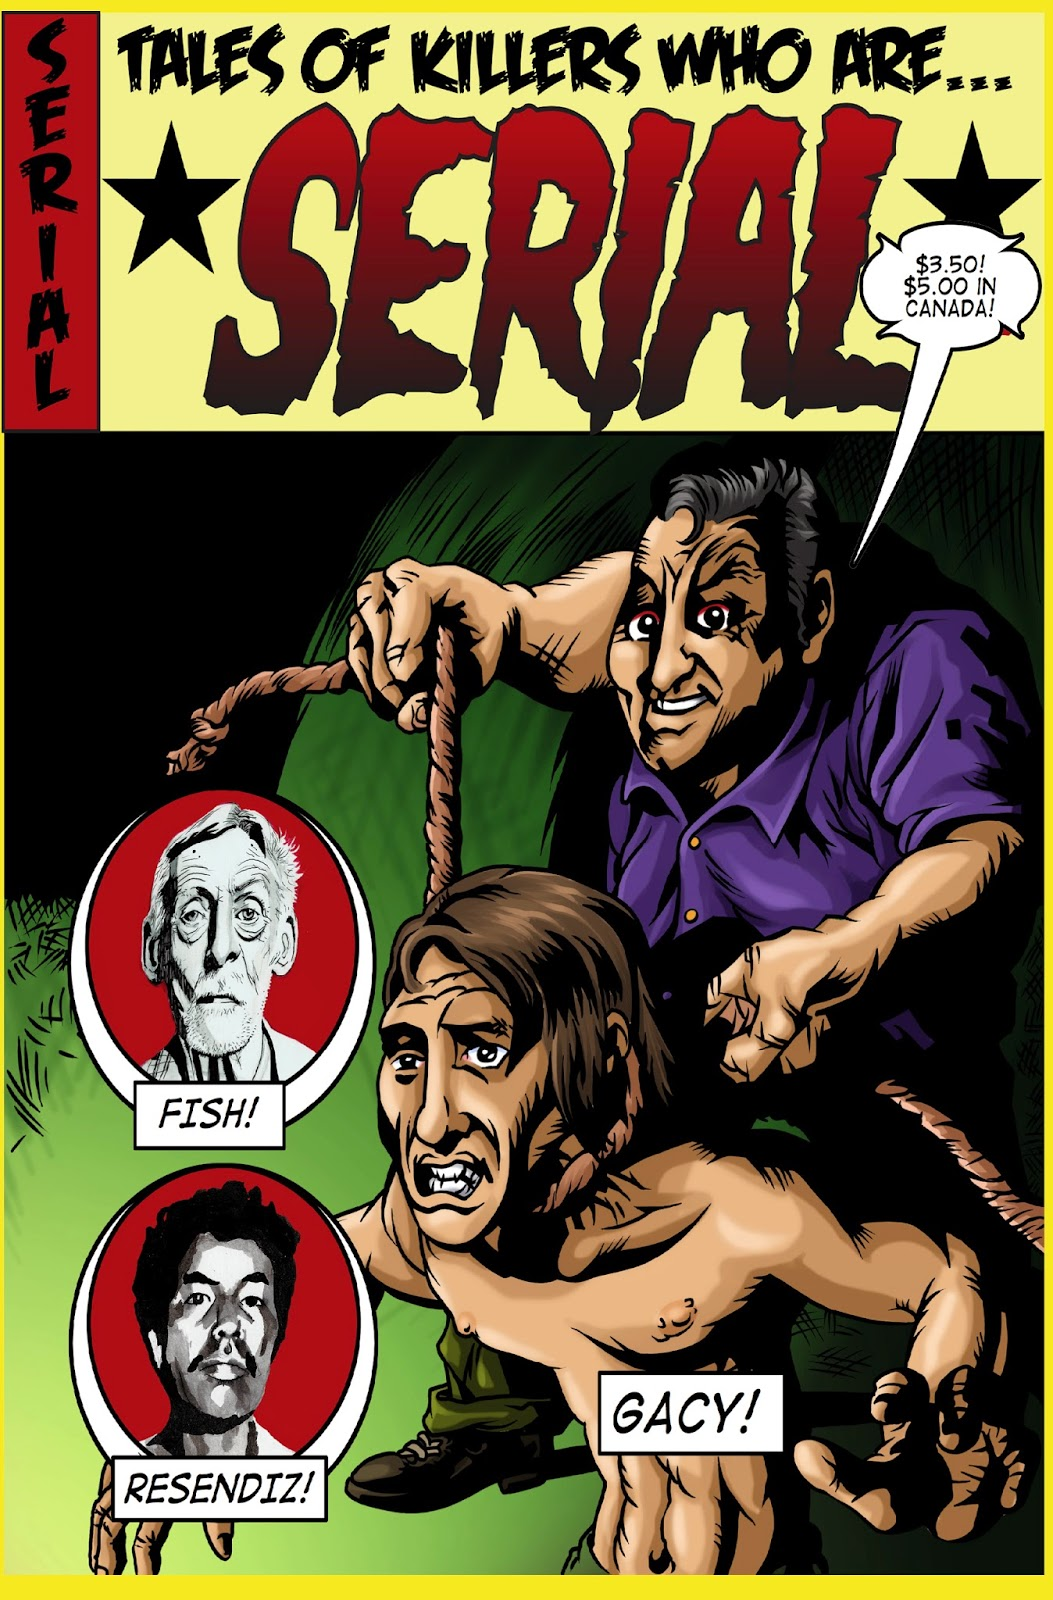 a discussion of the issue of serial killers